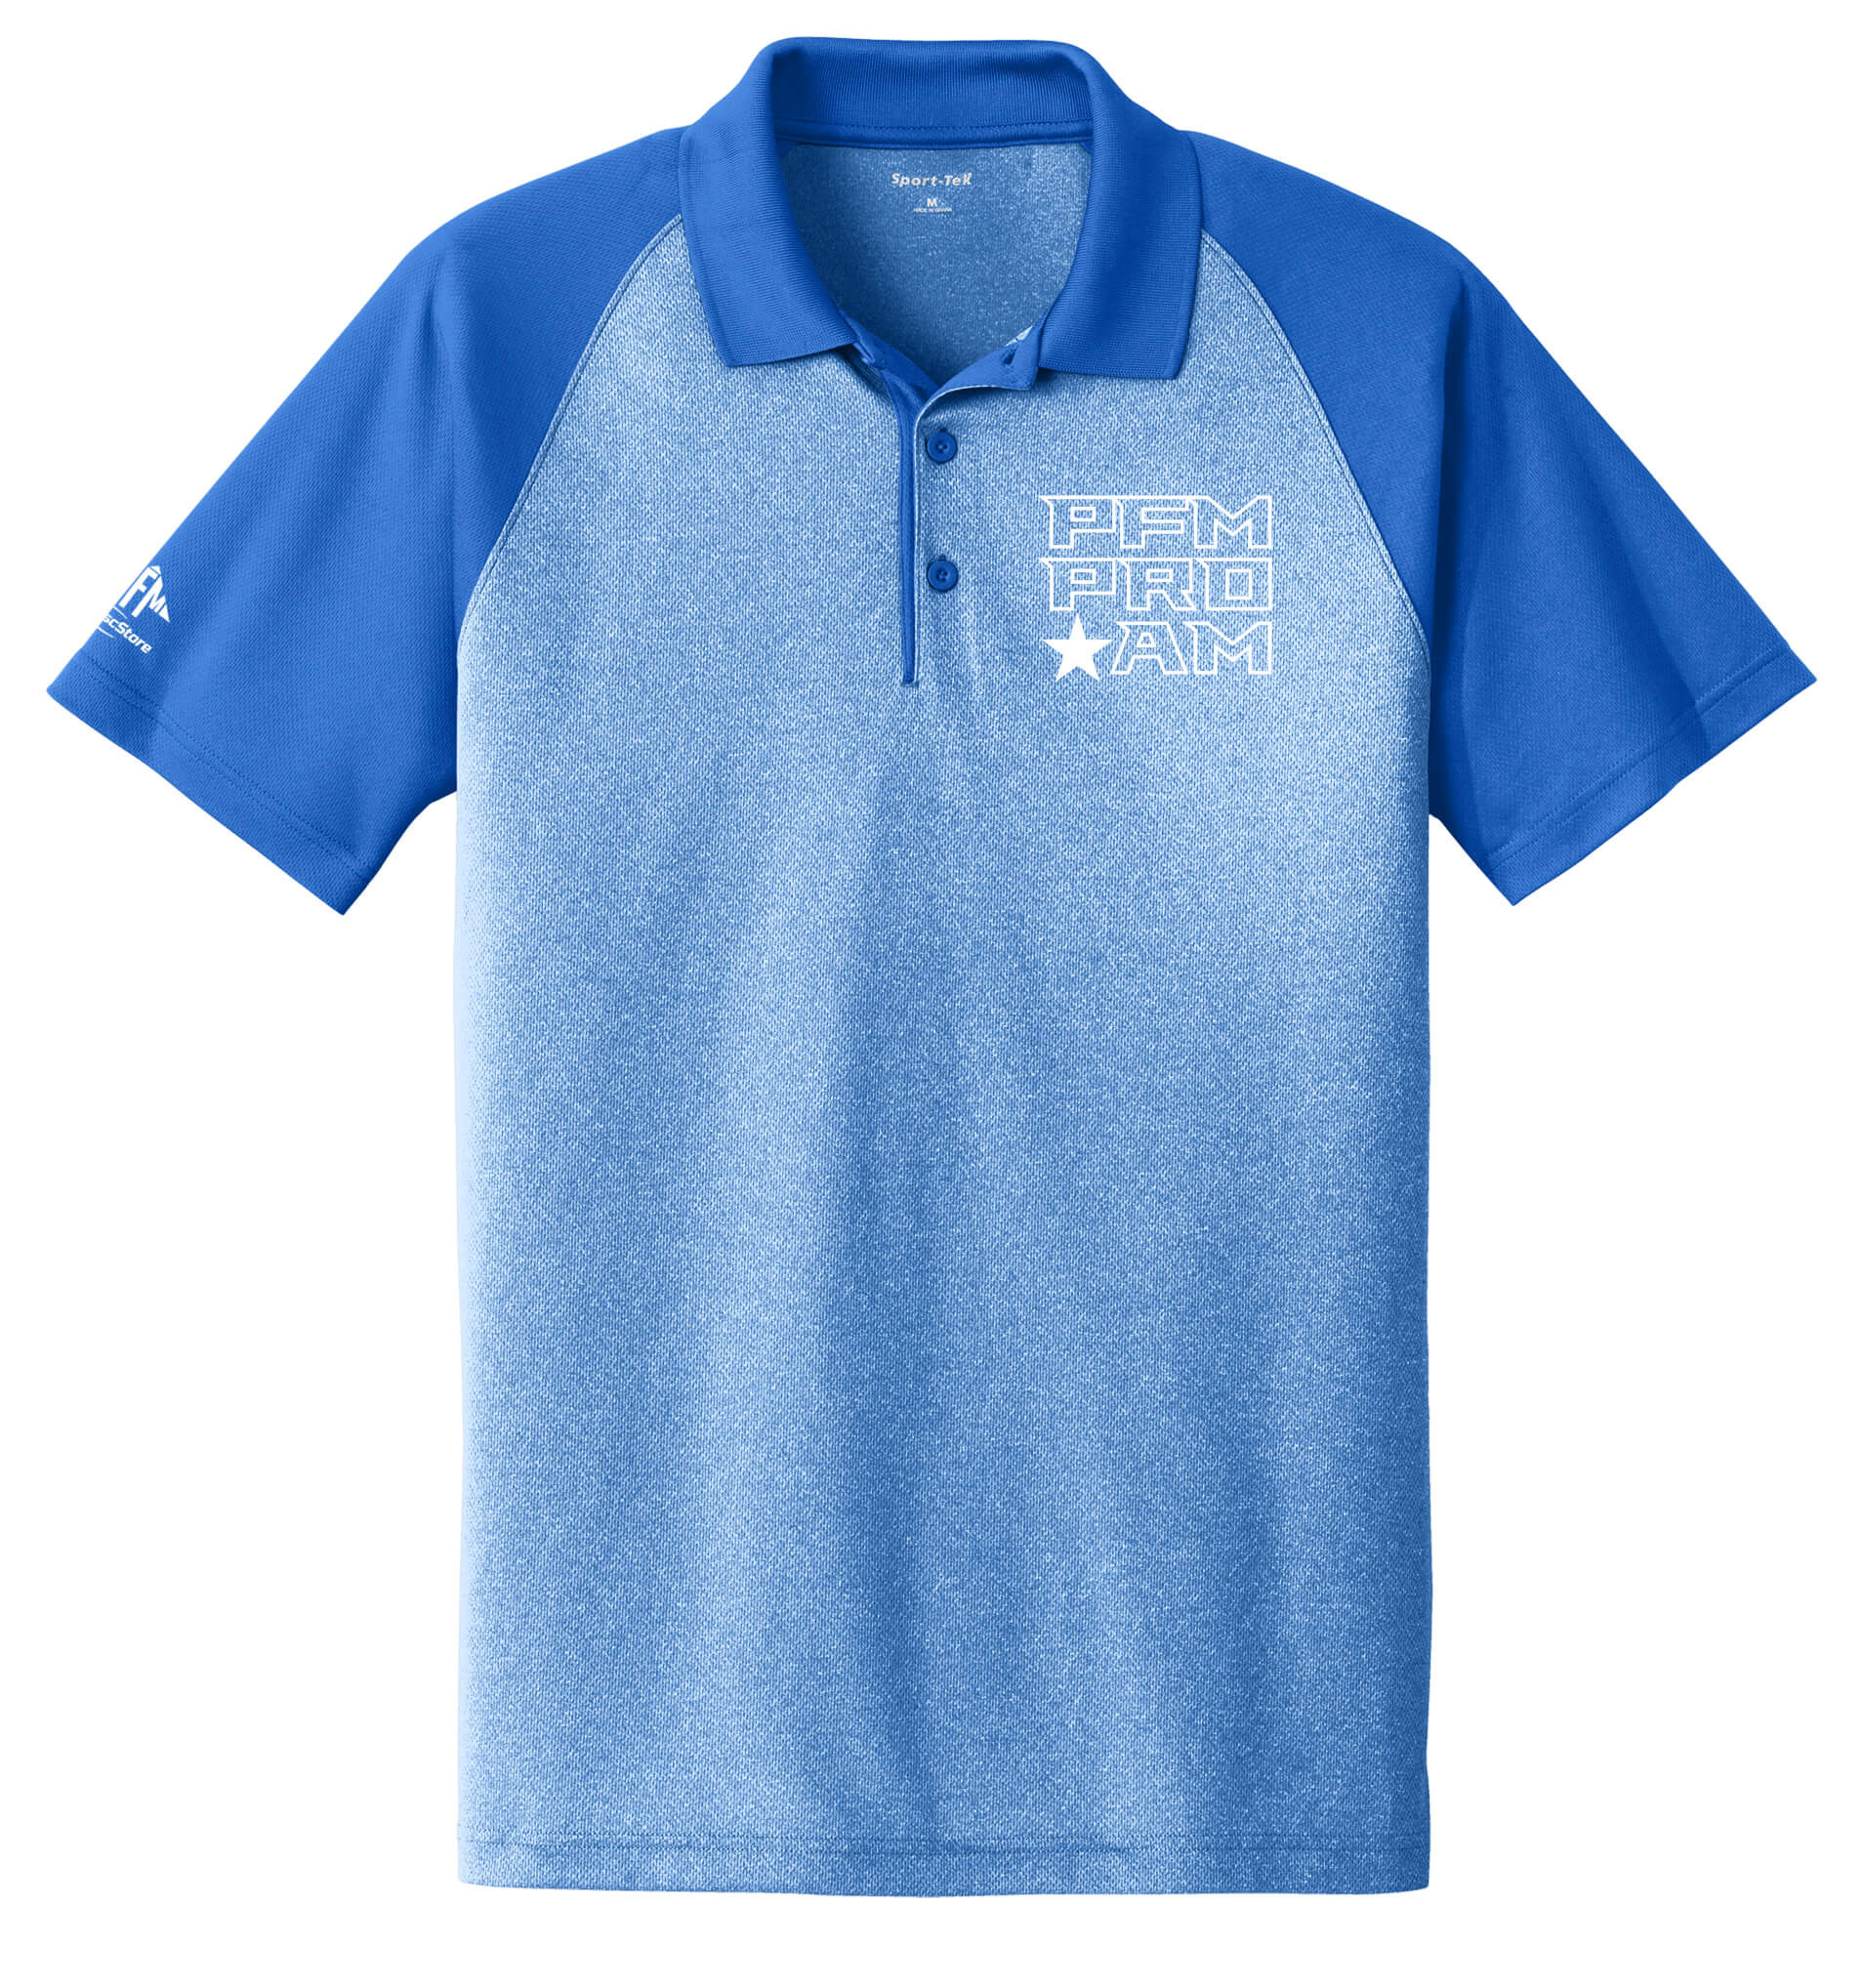 Play For More Charity Pro-Am Fundraiser Dri Fit Polo